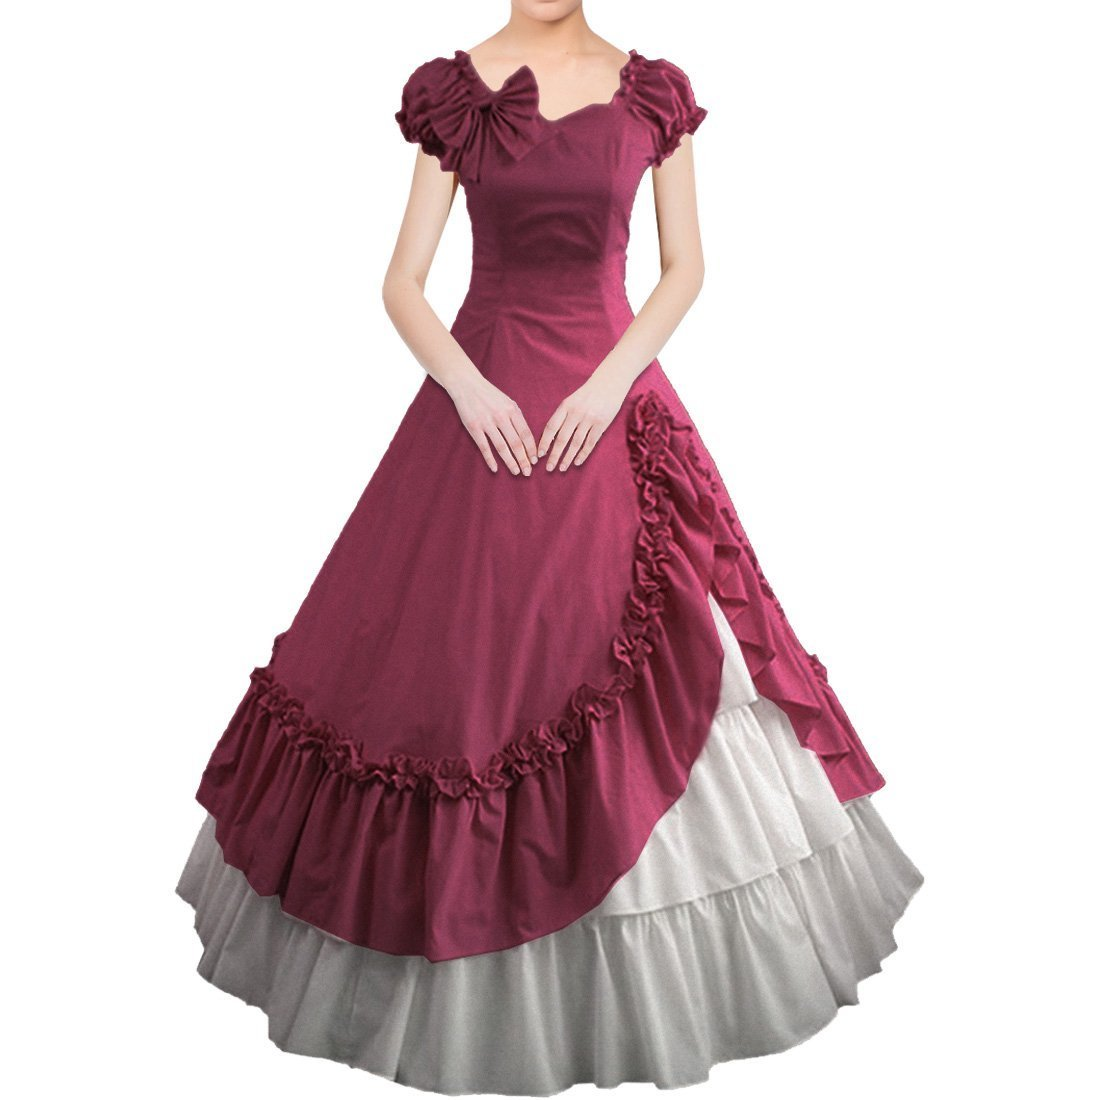 Partiss Womens Satin Ruffles Gothic Wedding Party Dress,XX-Large,WineRed